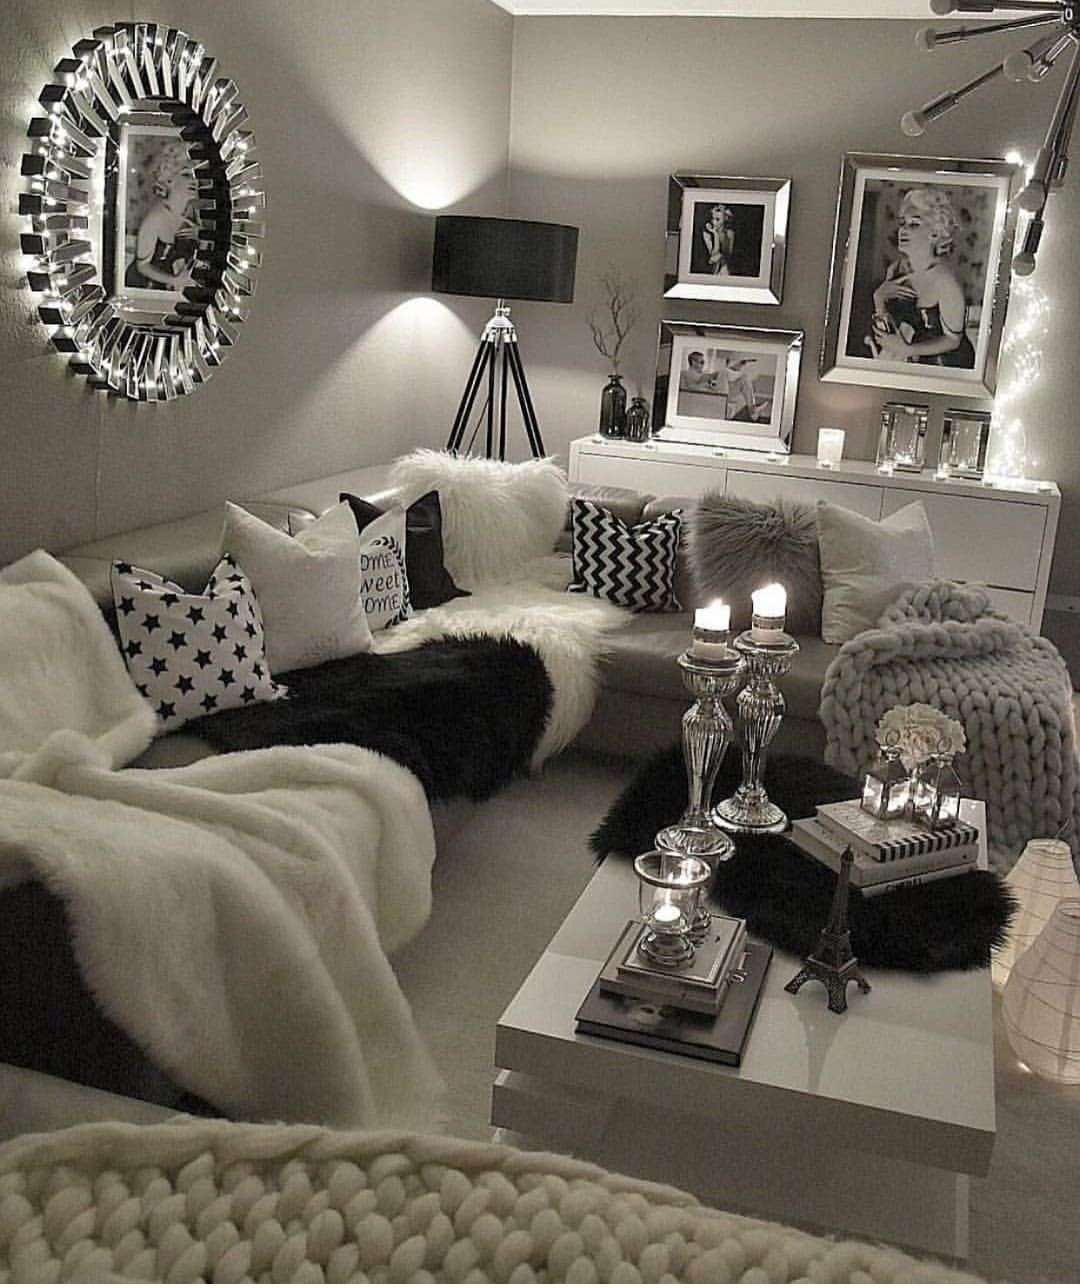 99 Beautiful White And Grey Living Room Interior: 27 Rustic Farmhouse Living Room Decor Ideas For Your Home